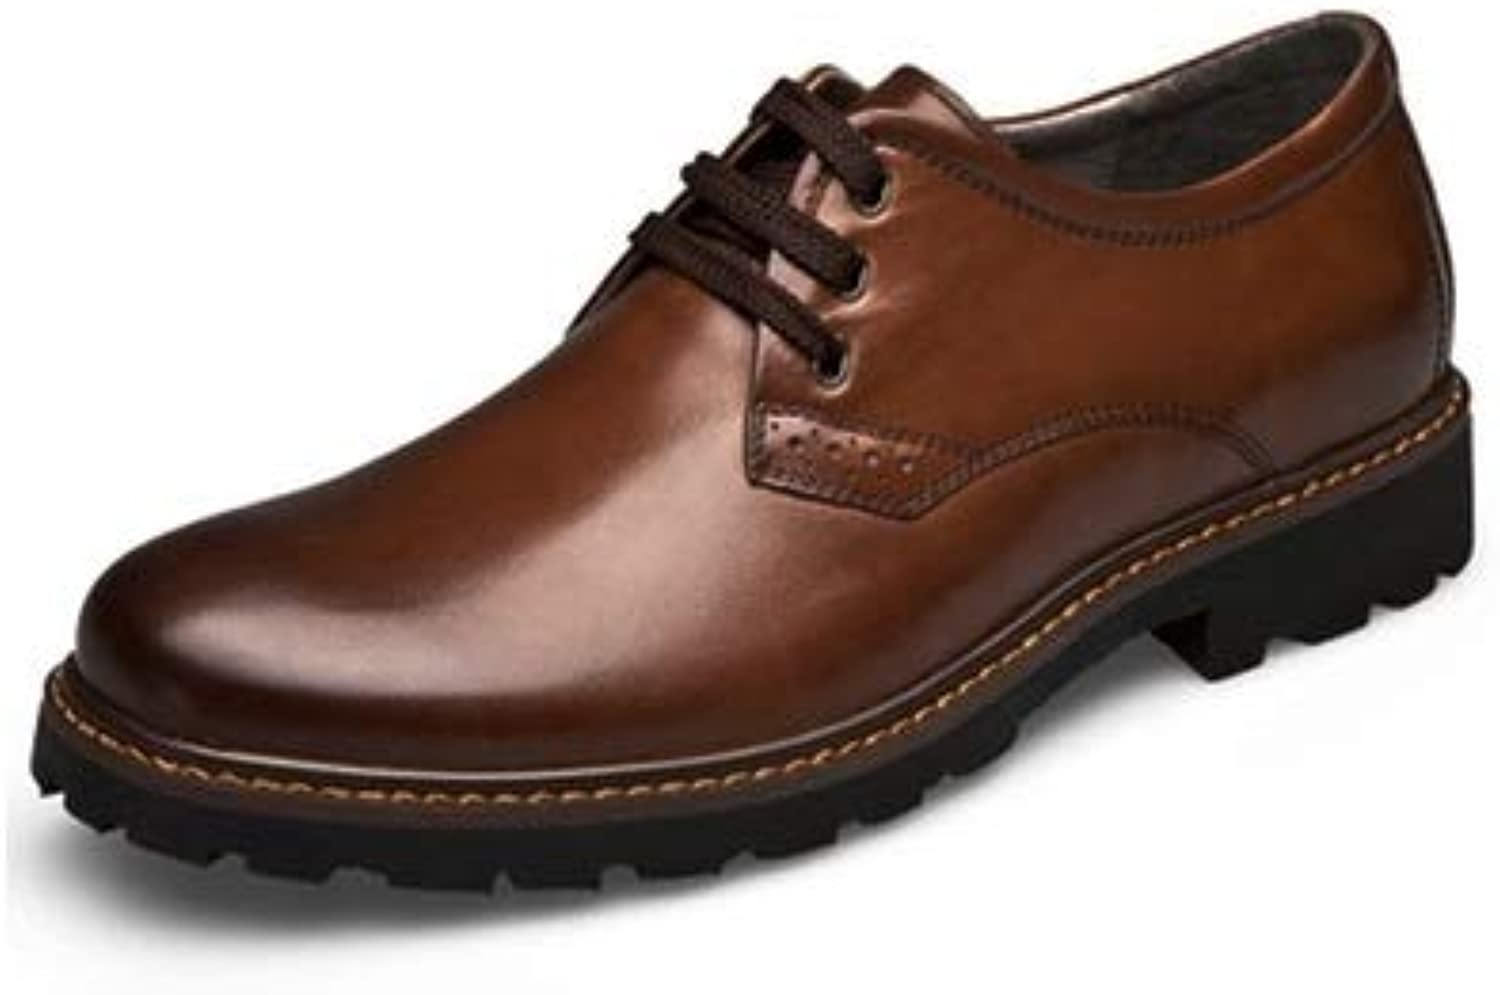 MUMUWU Men's Fashion Leather Oxford shoes Casual Comfort OX Leather Lace Up Classic Leisure shoes (color   Brown- Lace, Size   9.5 D(M) US)